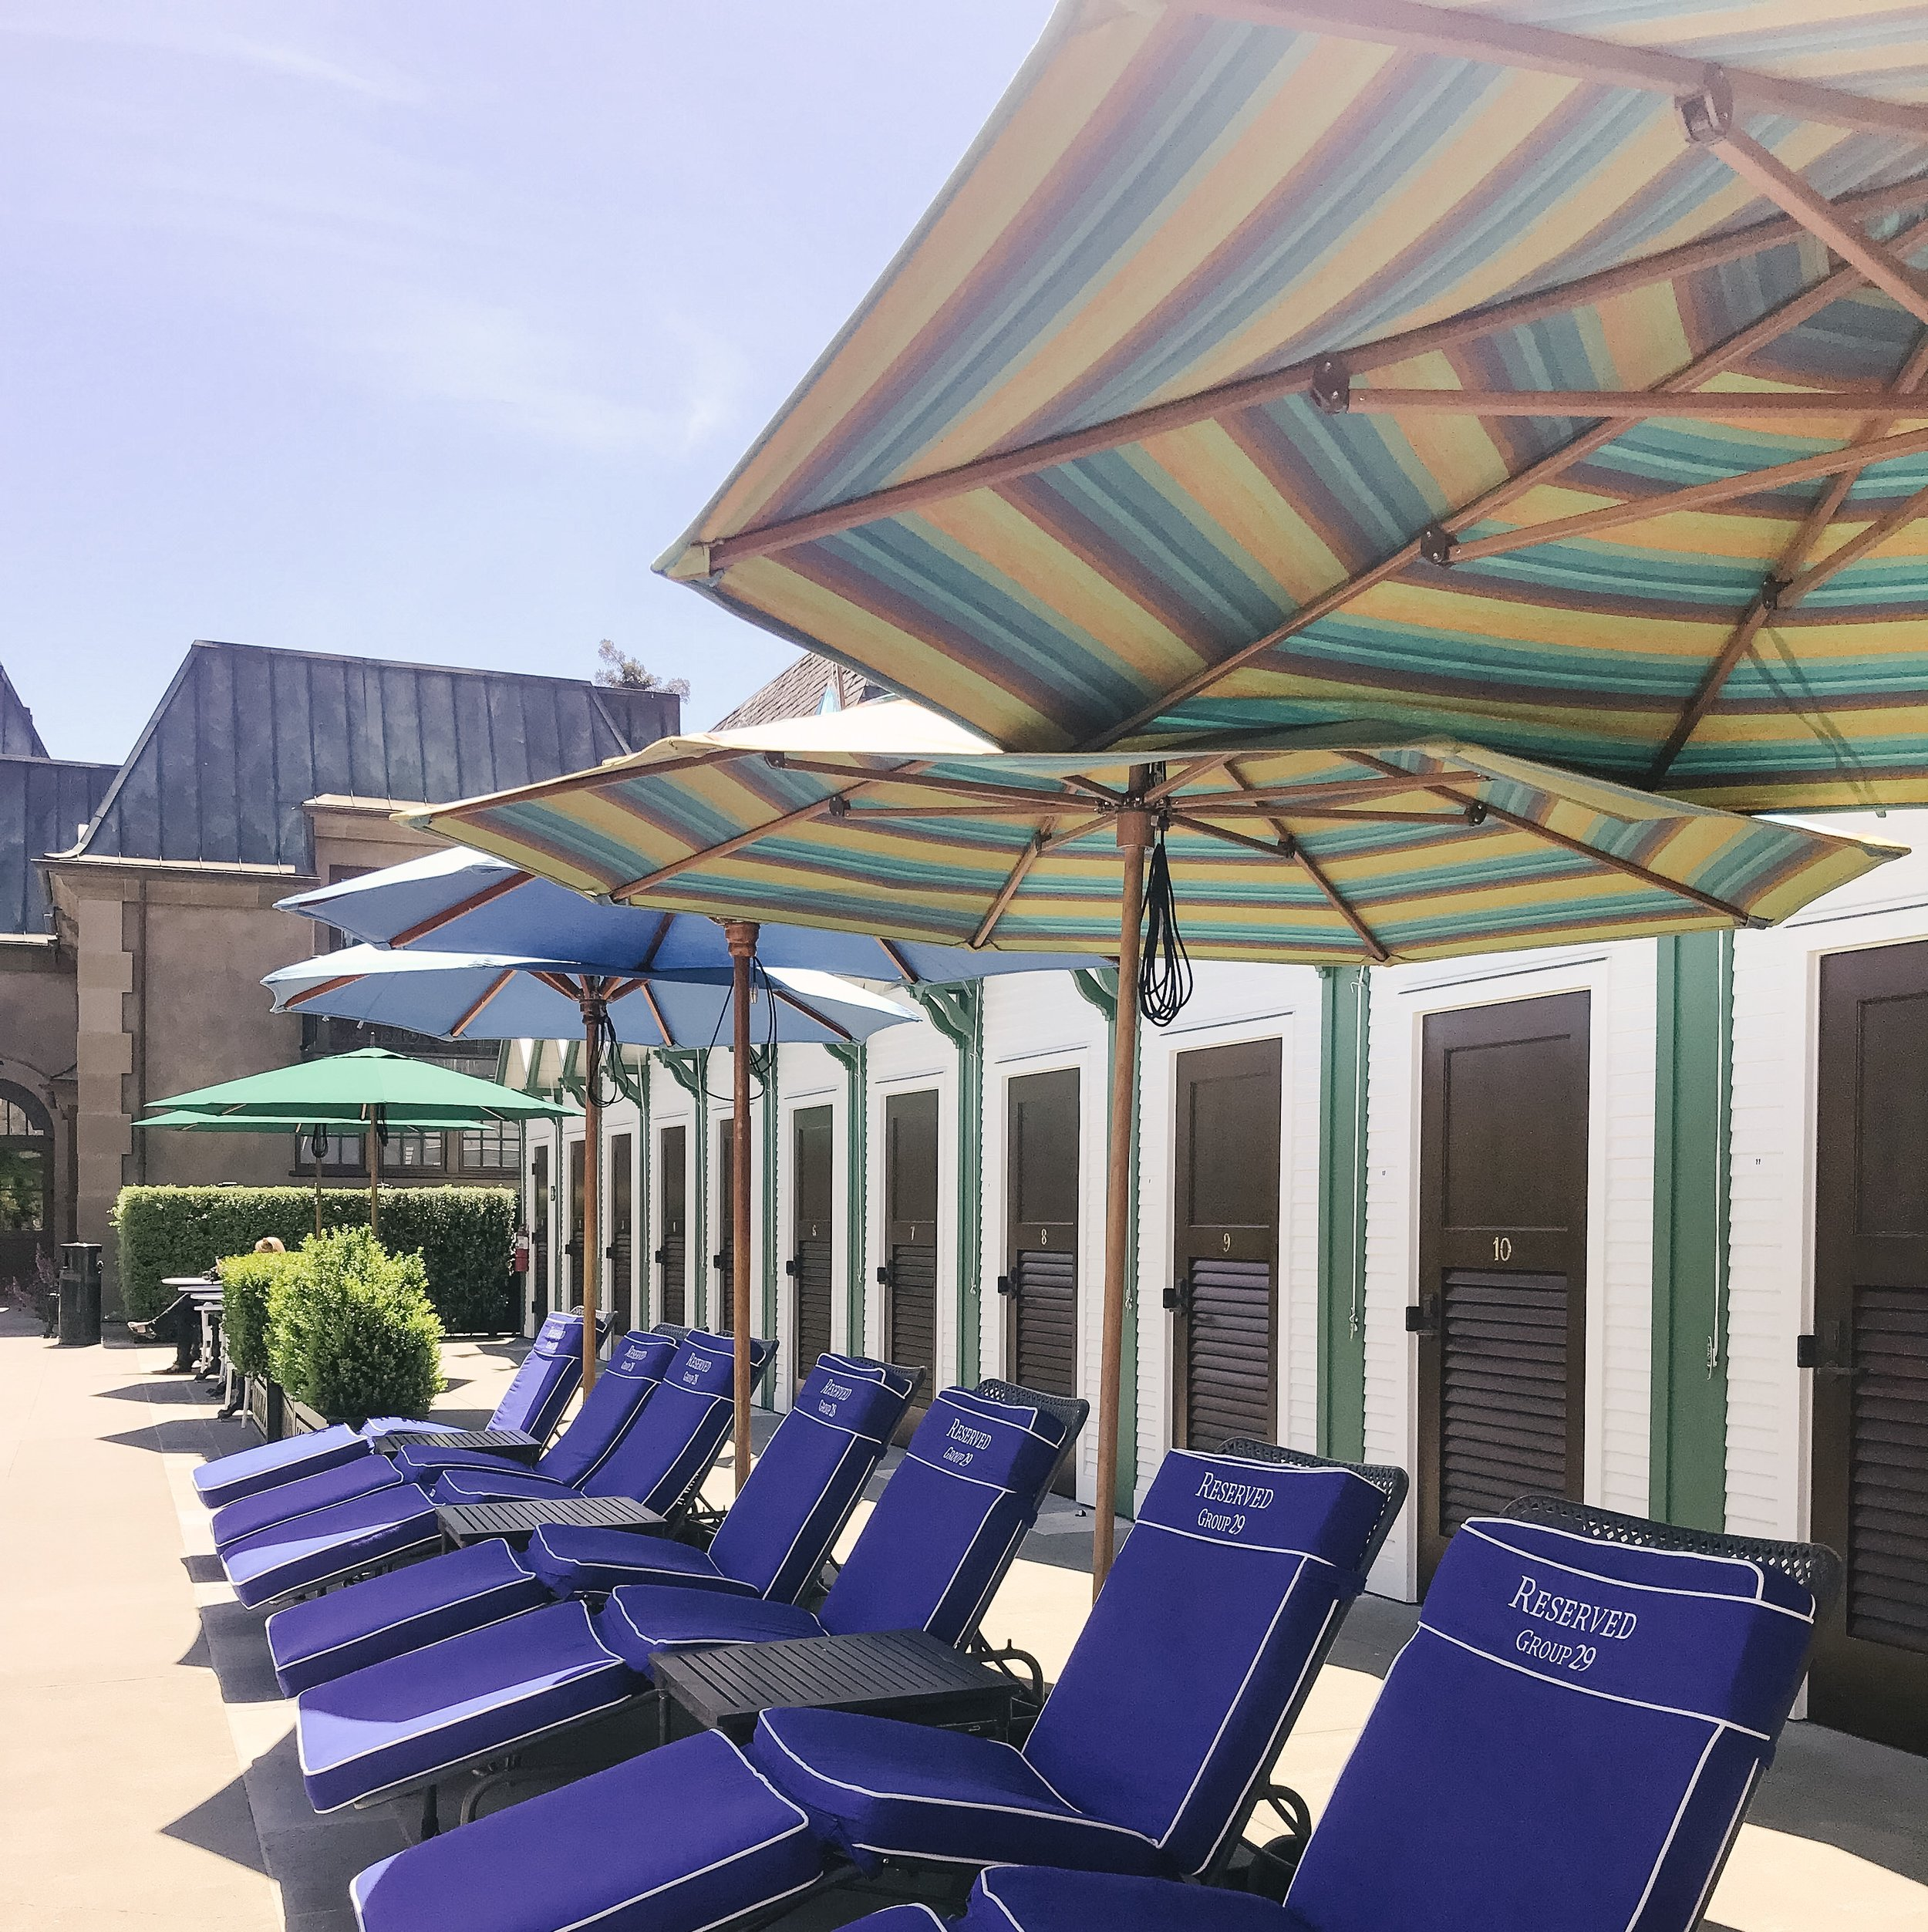 cabine rental tips francis ford coppola winery pool